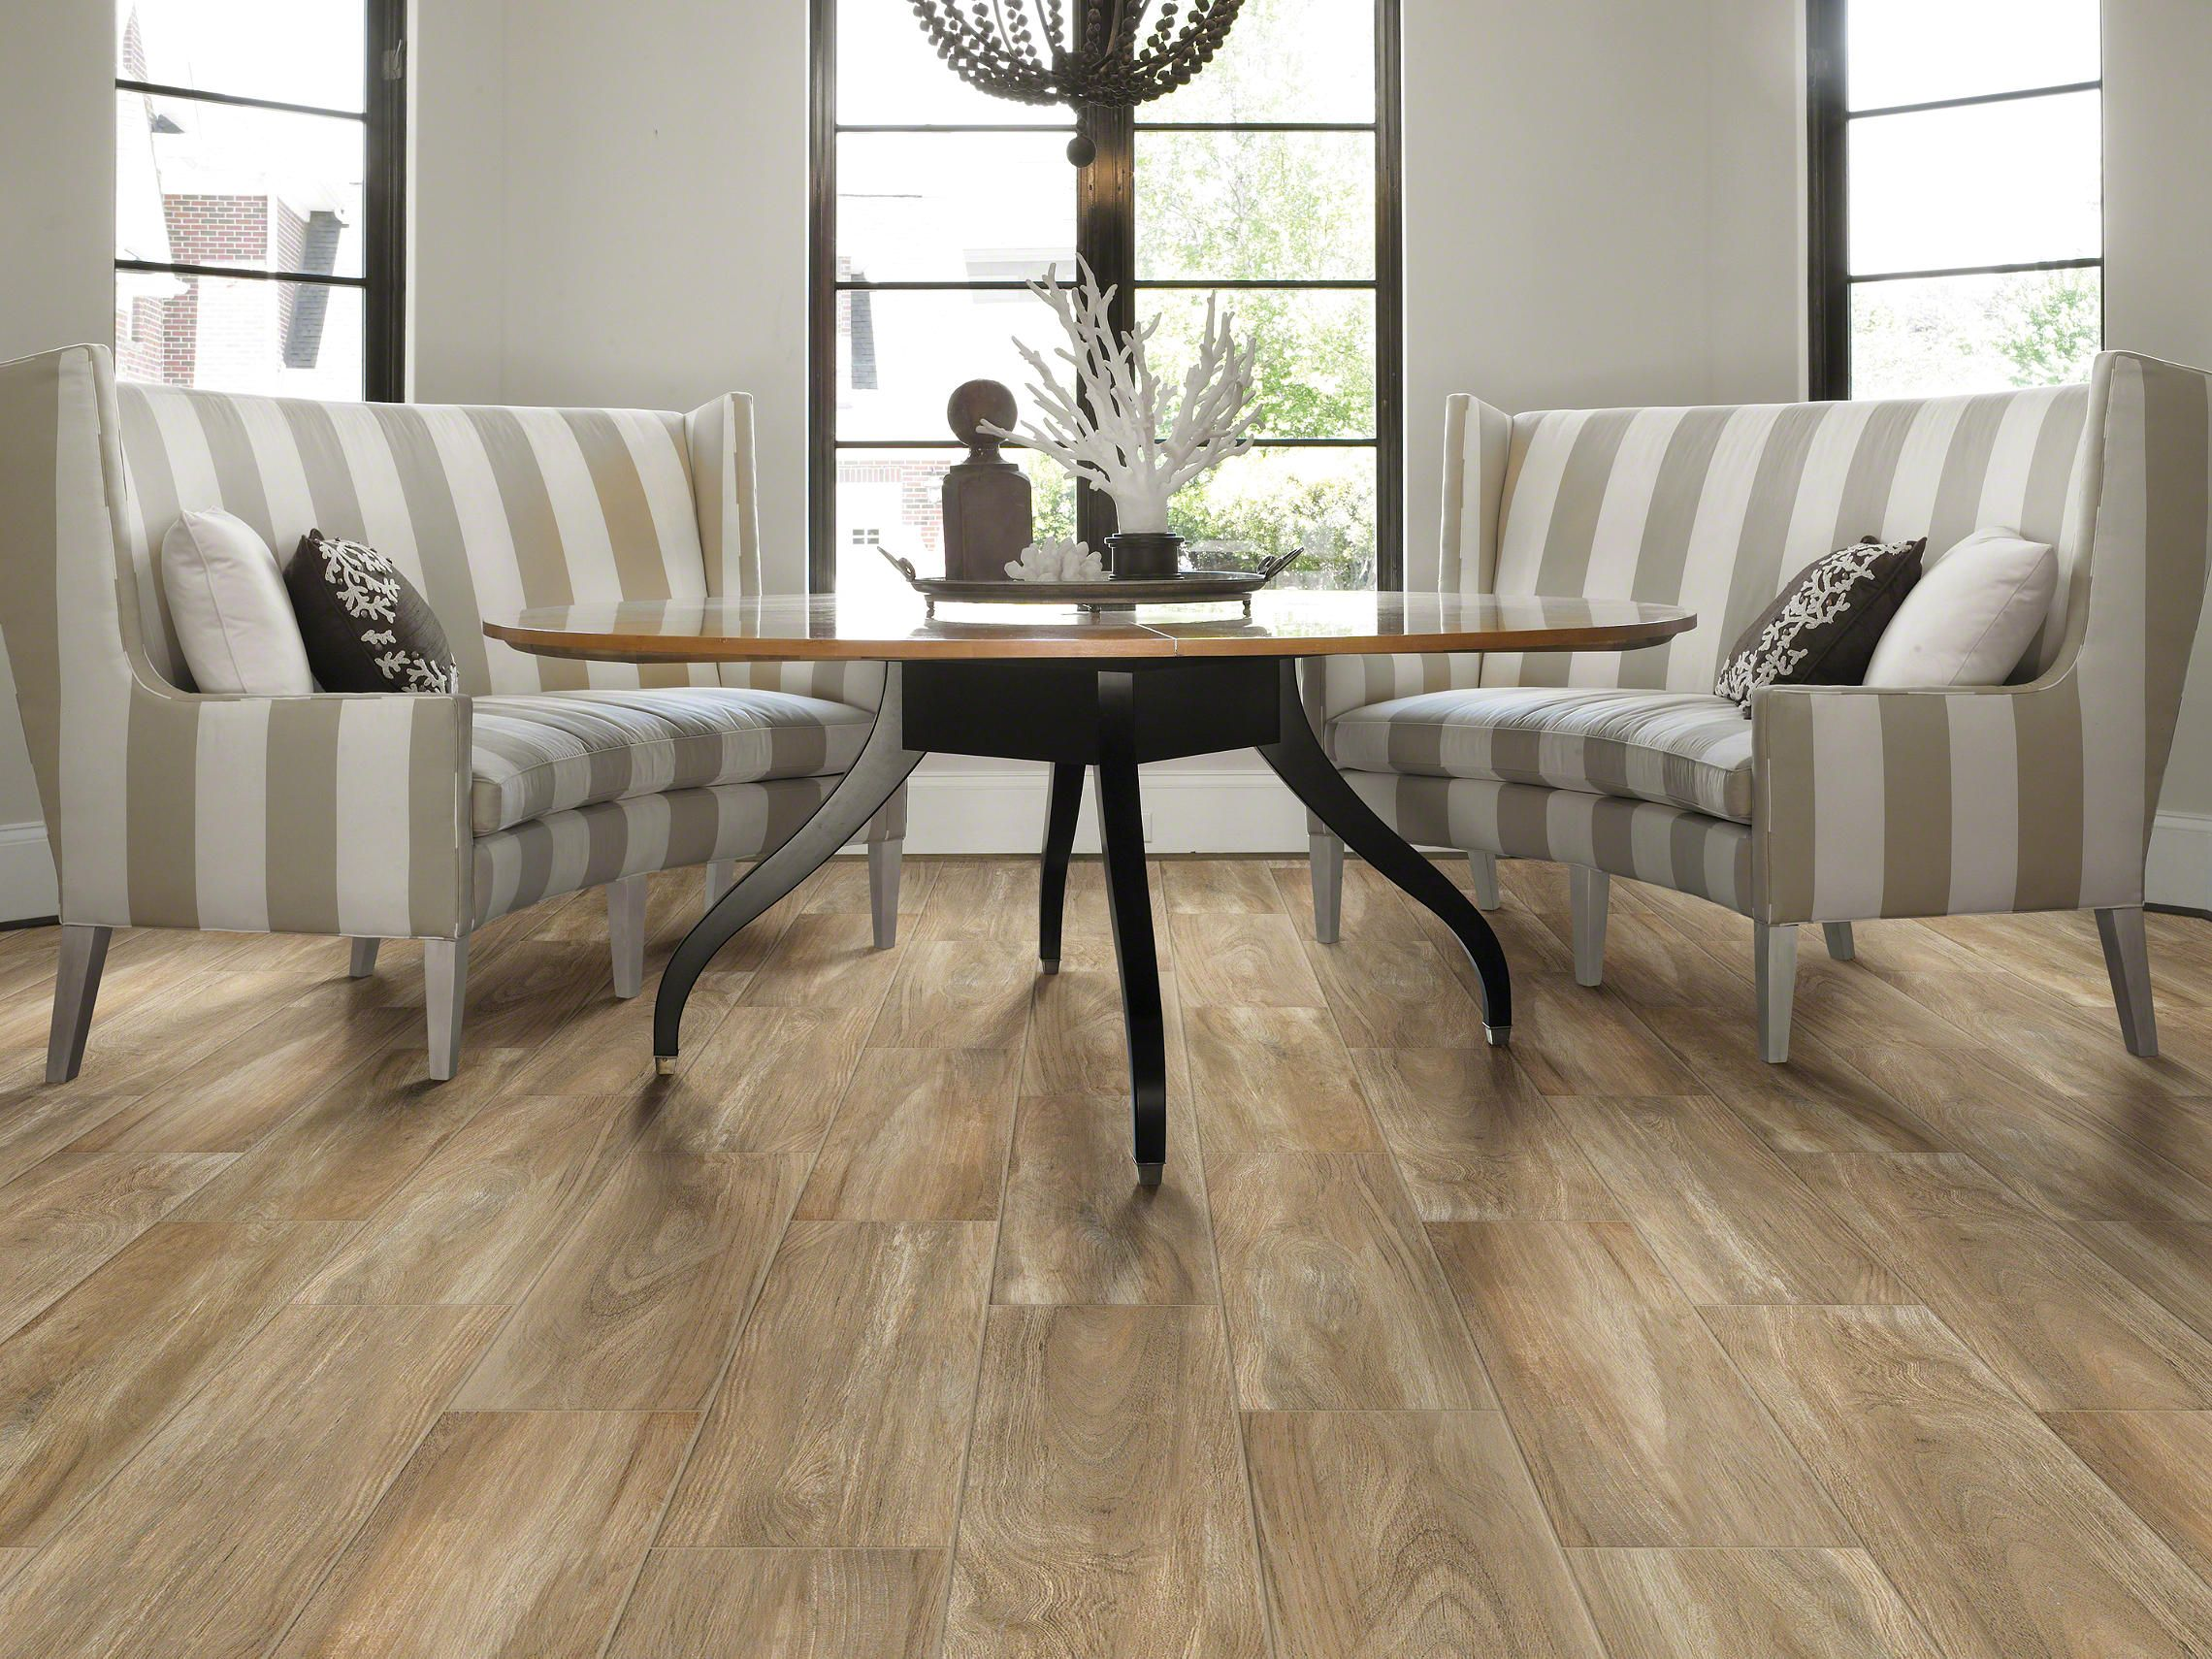 VALENTINO 8X32 LEGEND Room View Flooring, Shaw